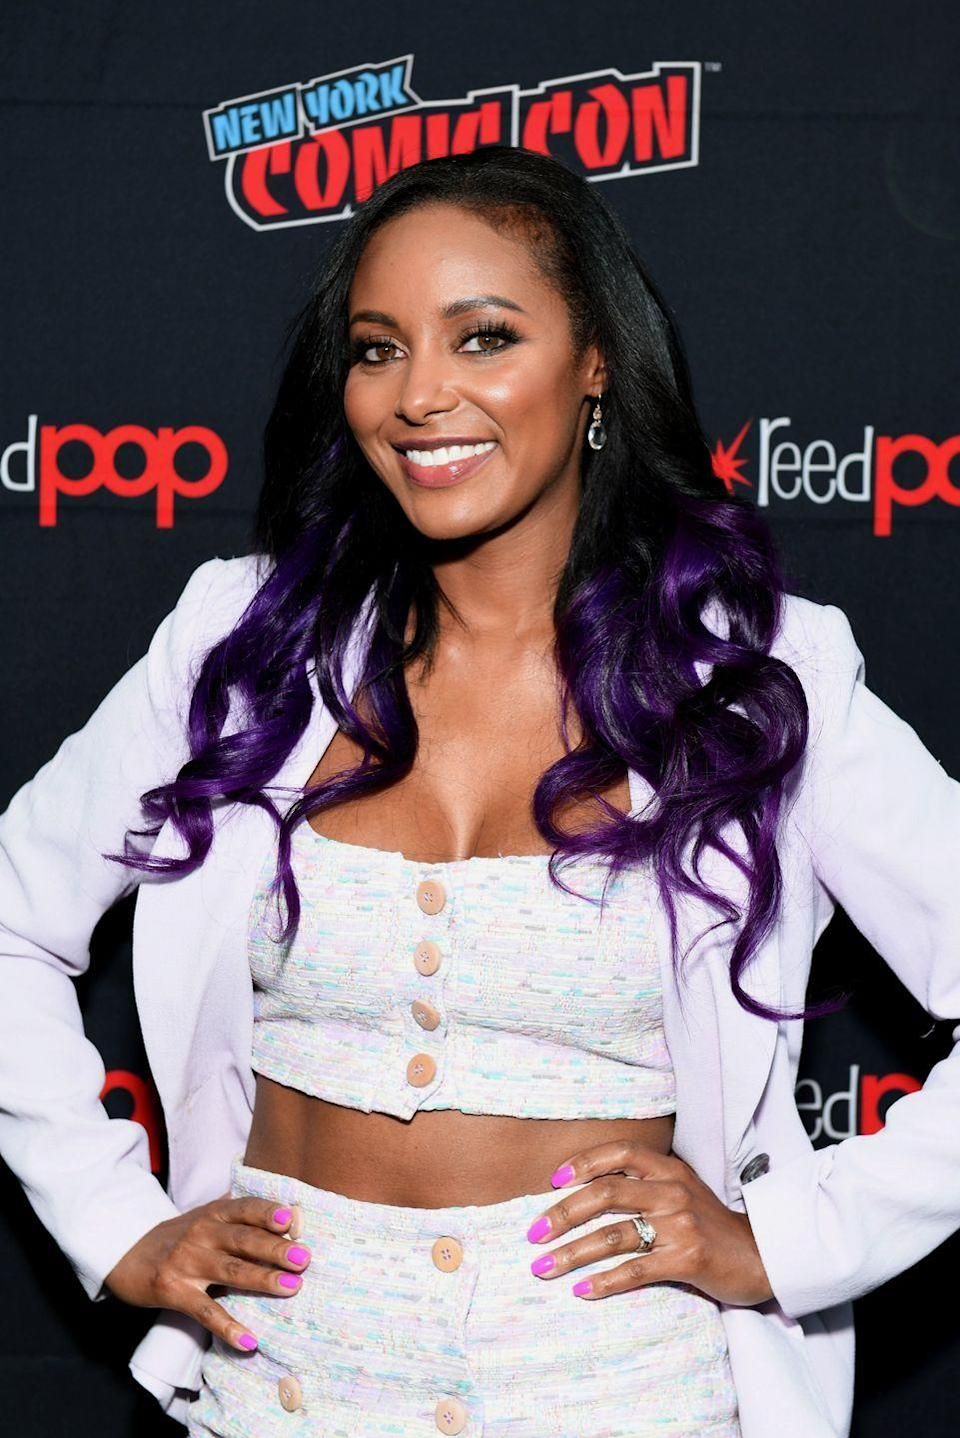 "<p>Add a bit of color to your curls with this pretty <a href=""https://www.goodhousekeeping.com/beauty/hair/g3029/purple-hair-color-ideas/"" rel=""nofollow noopener"" target=""_blank"" data-ylk=""slk:purple ombré"" class=""link rapid-noclick-resp"">purple ombré</a> style.</p>"